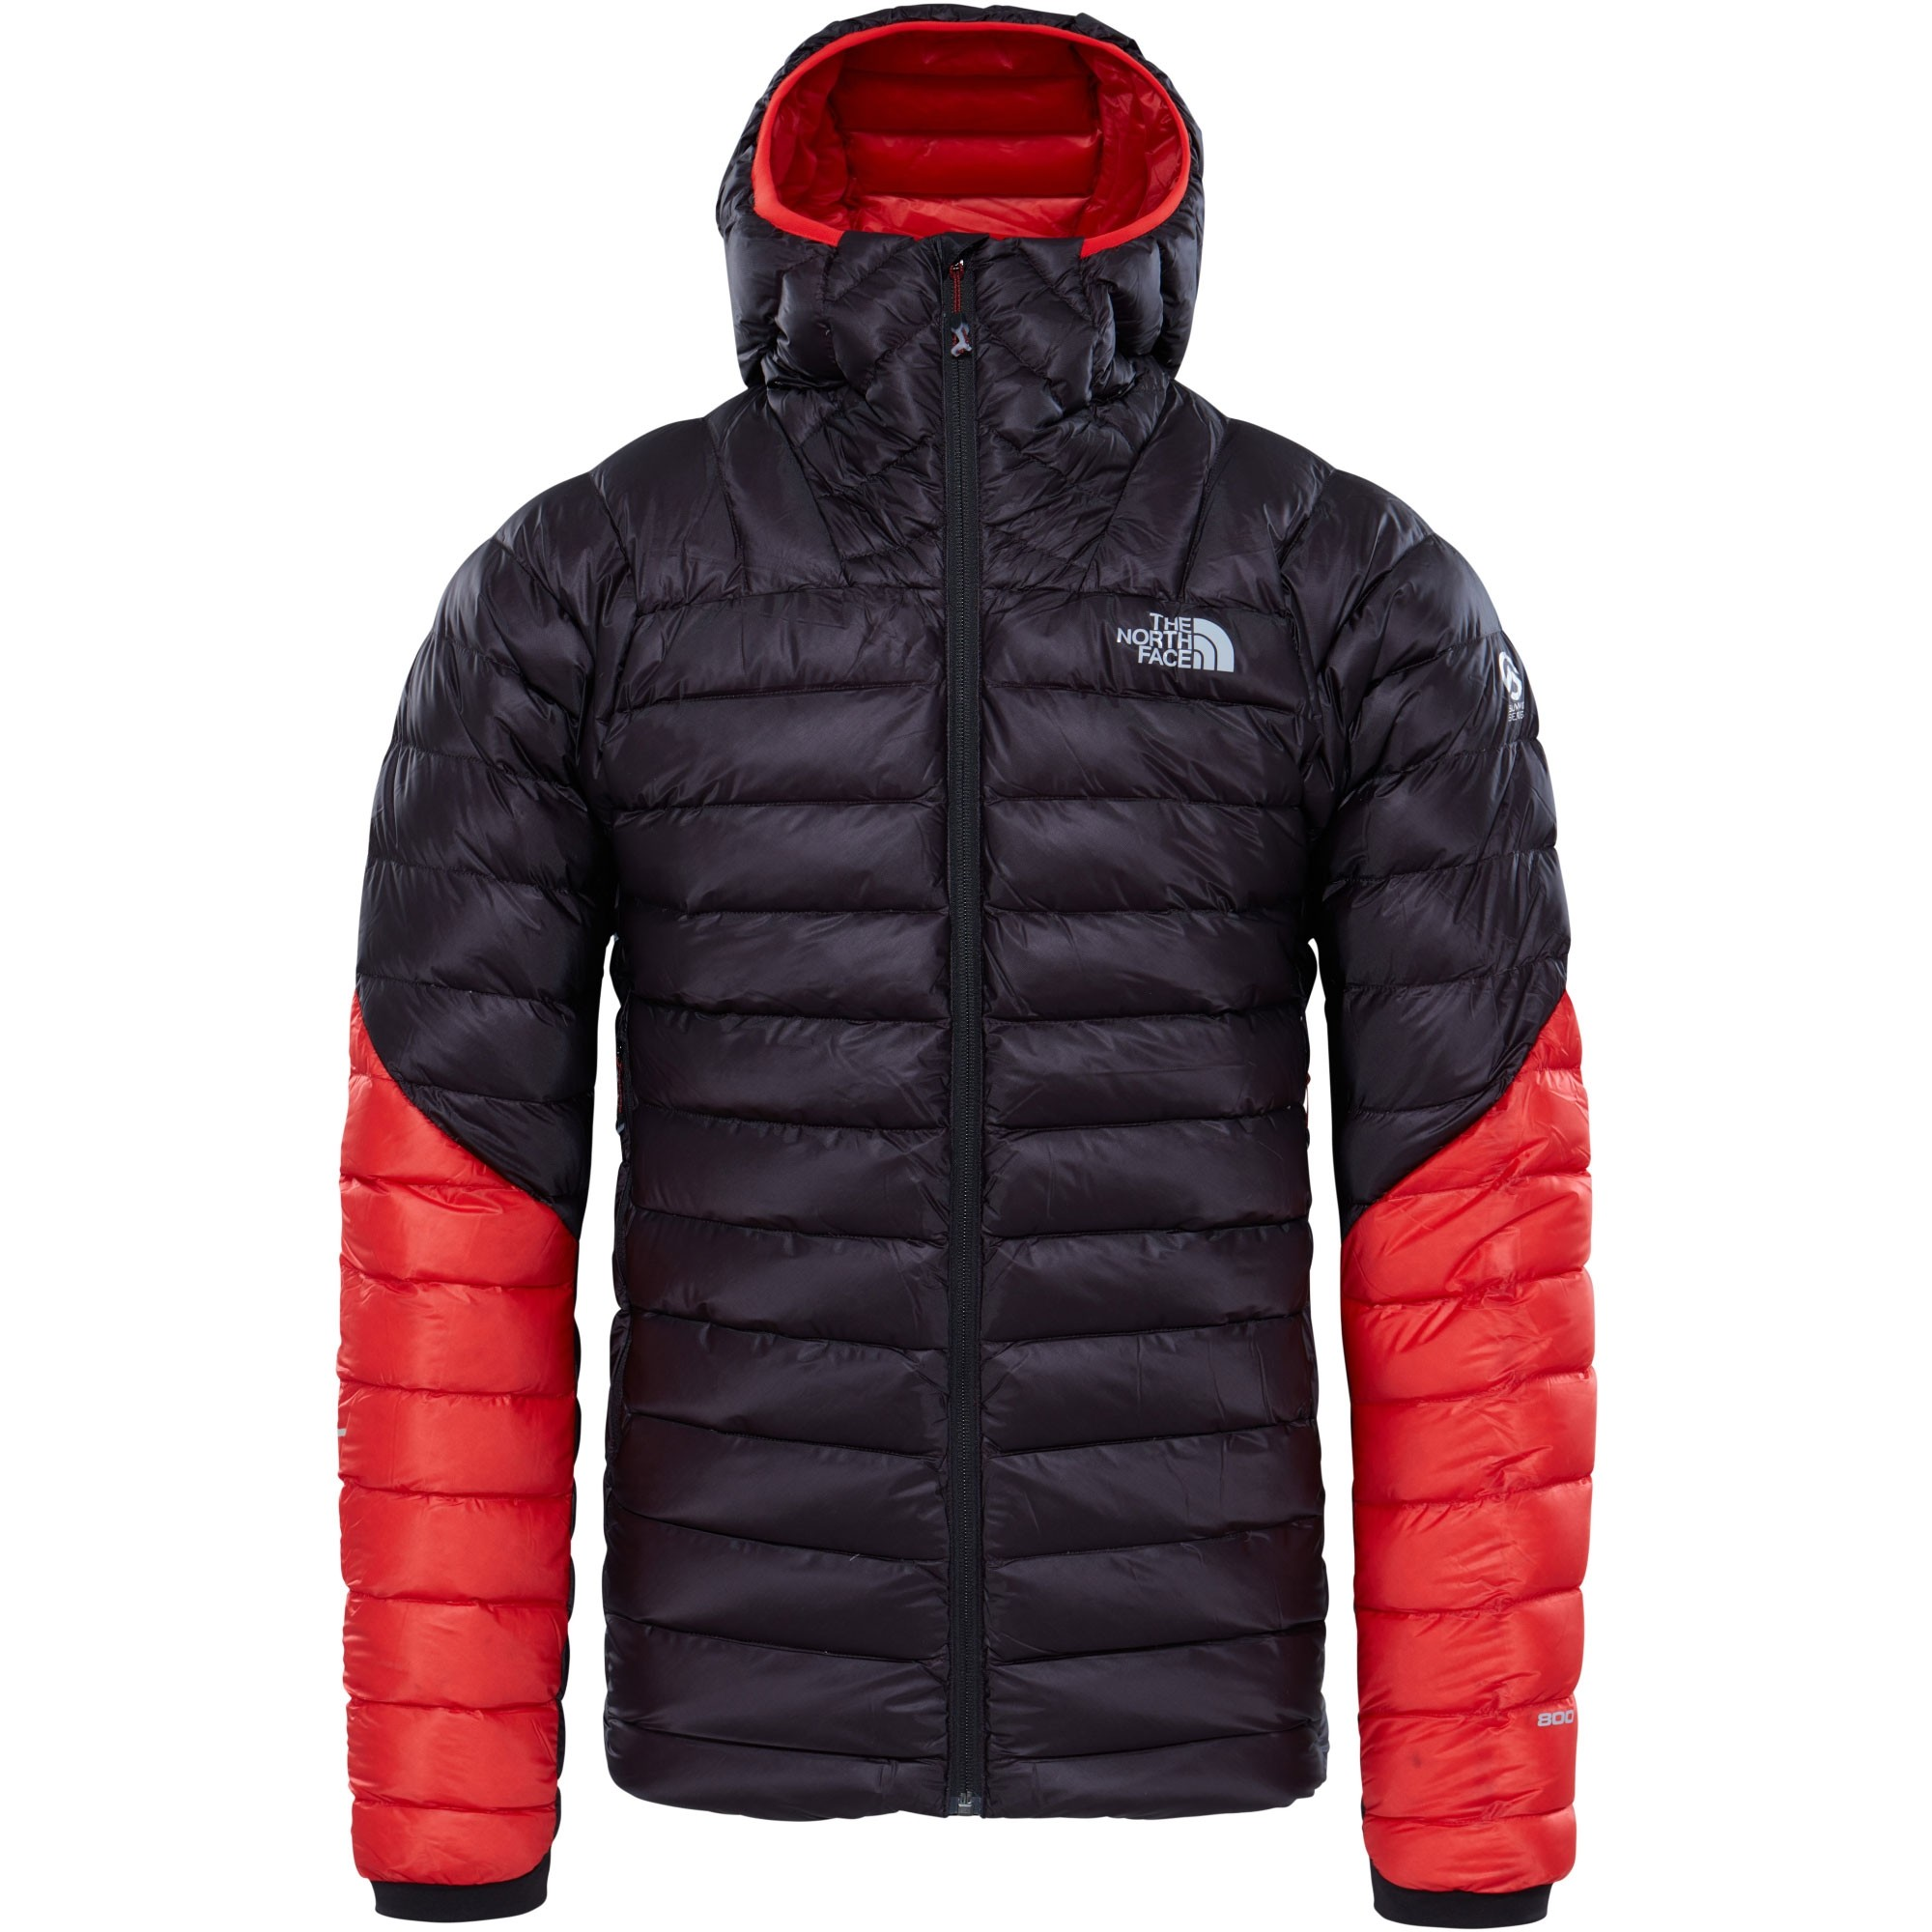 31d4709a2c18 The North Face Summit L3 Down Hoodie available at Outside.co.uk